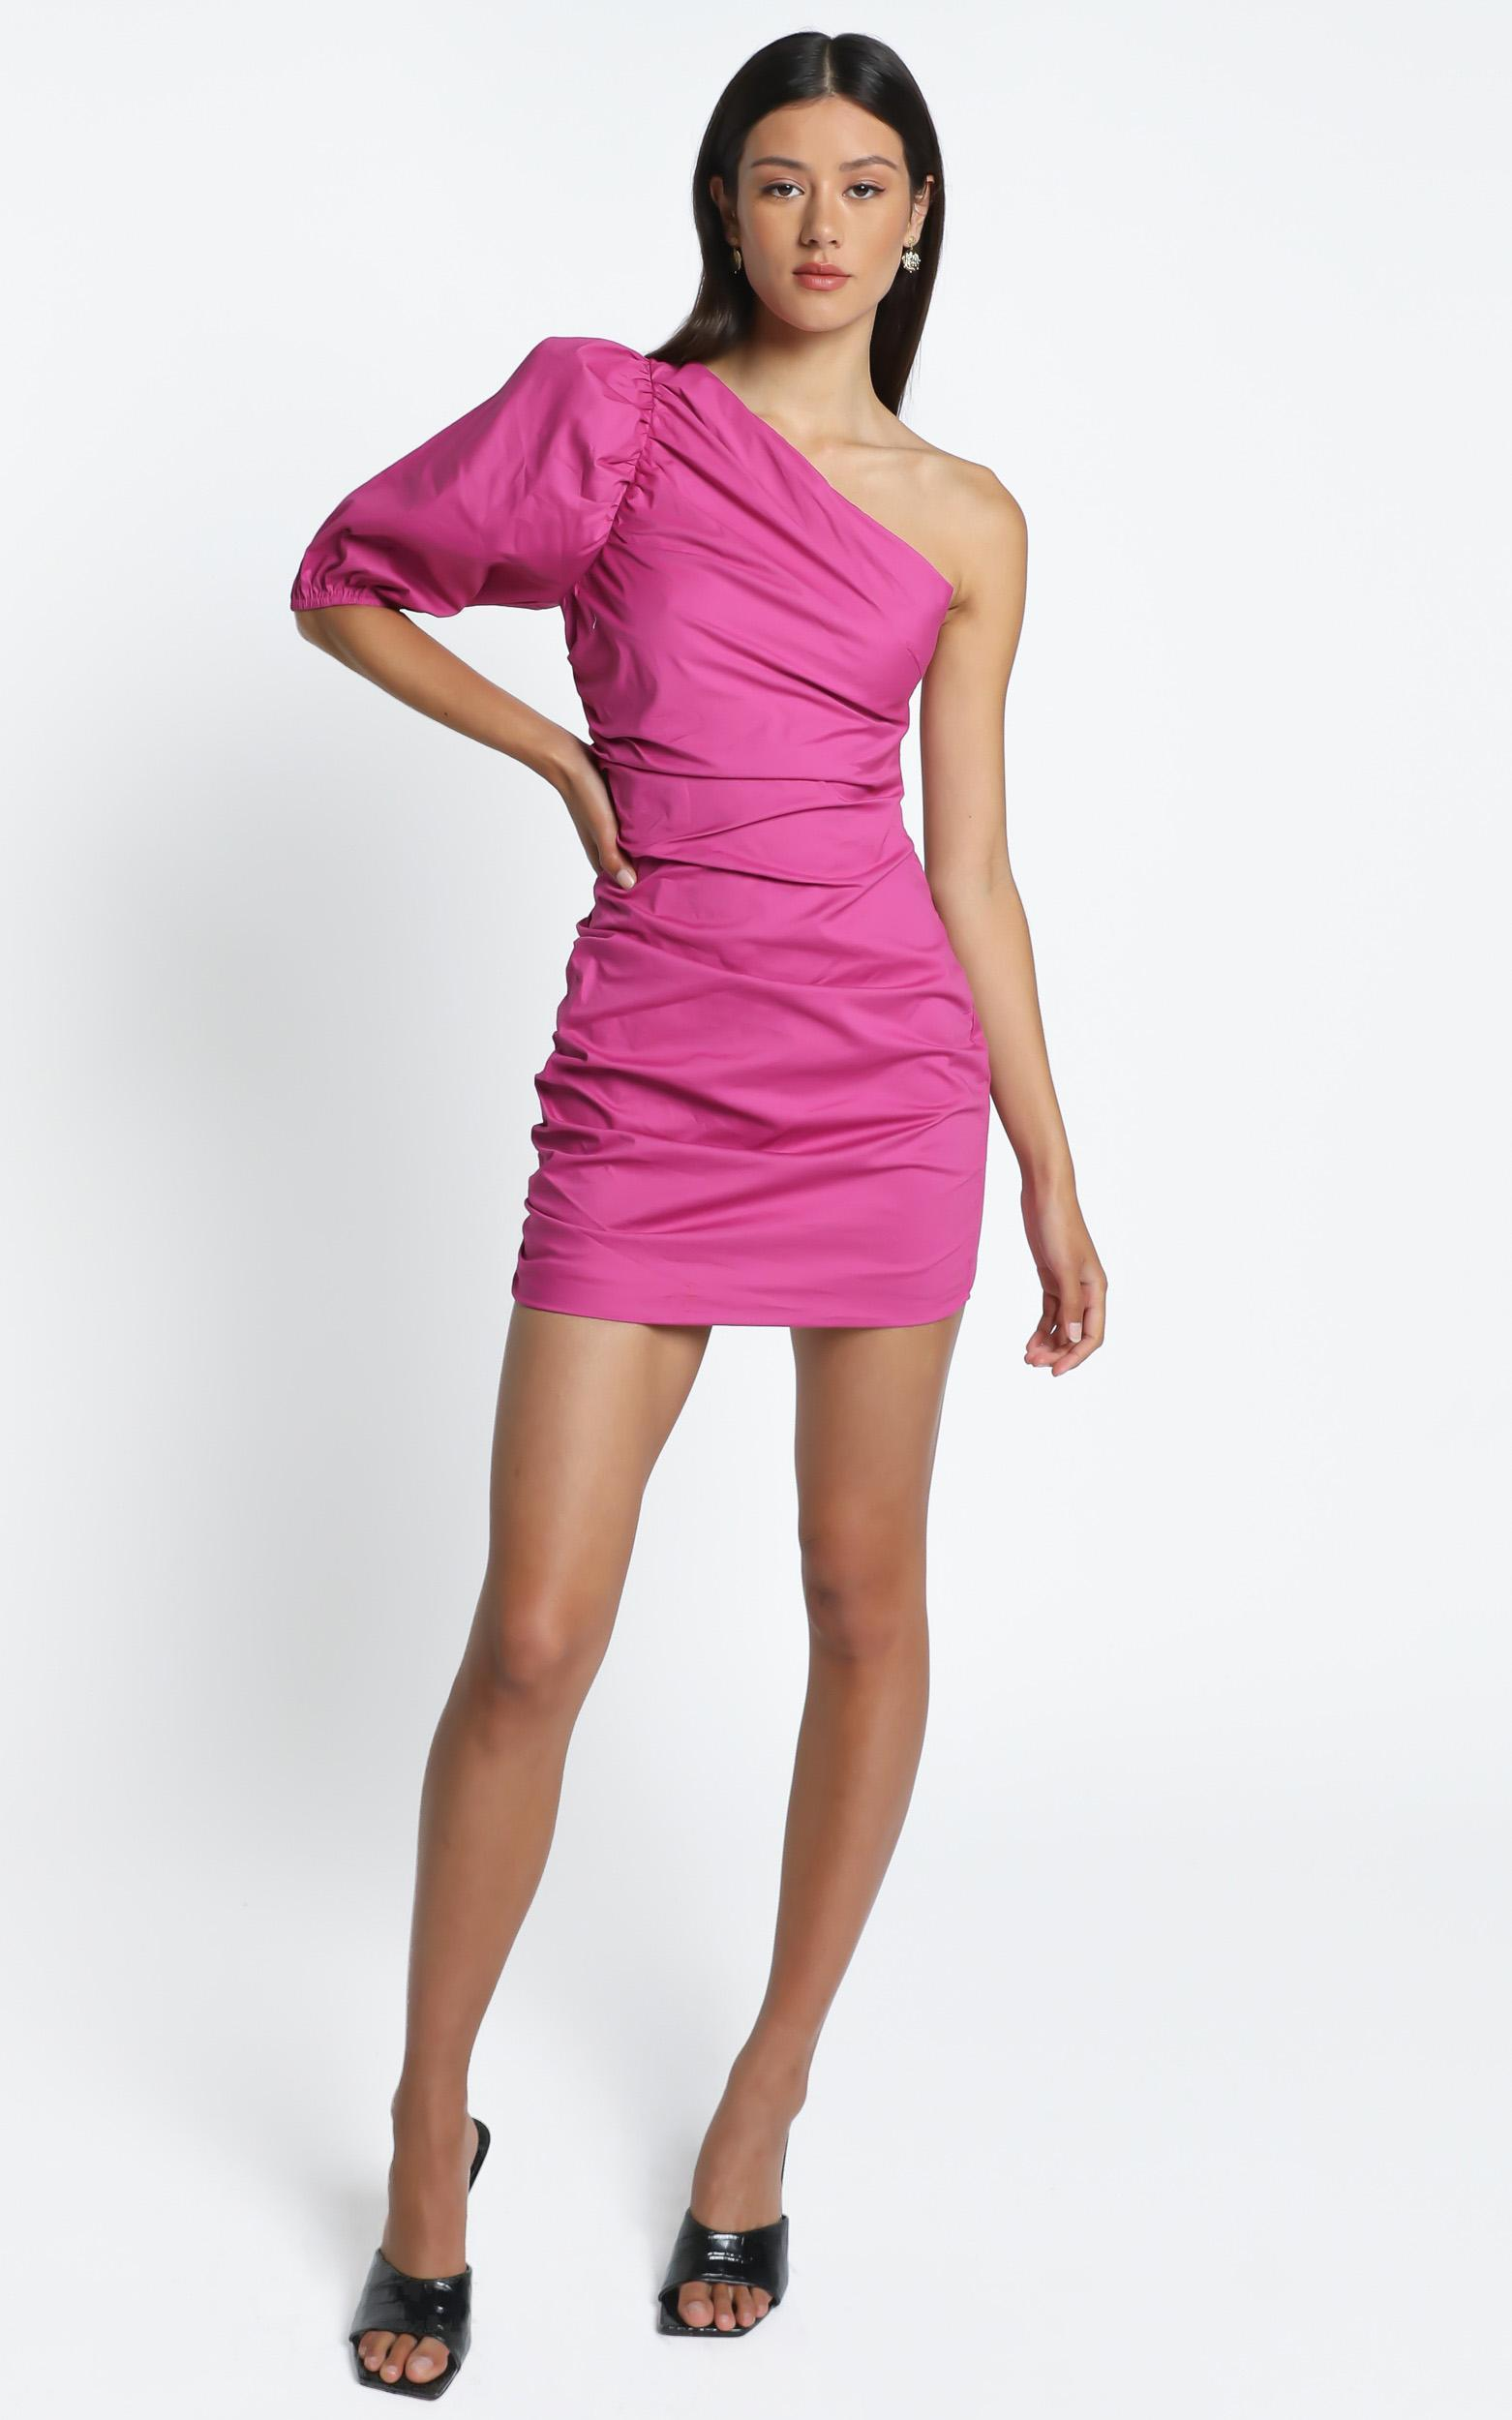 Lexia Dress in Pink - 14, PNK1, hi-res image number null